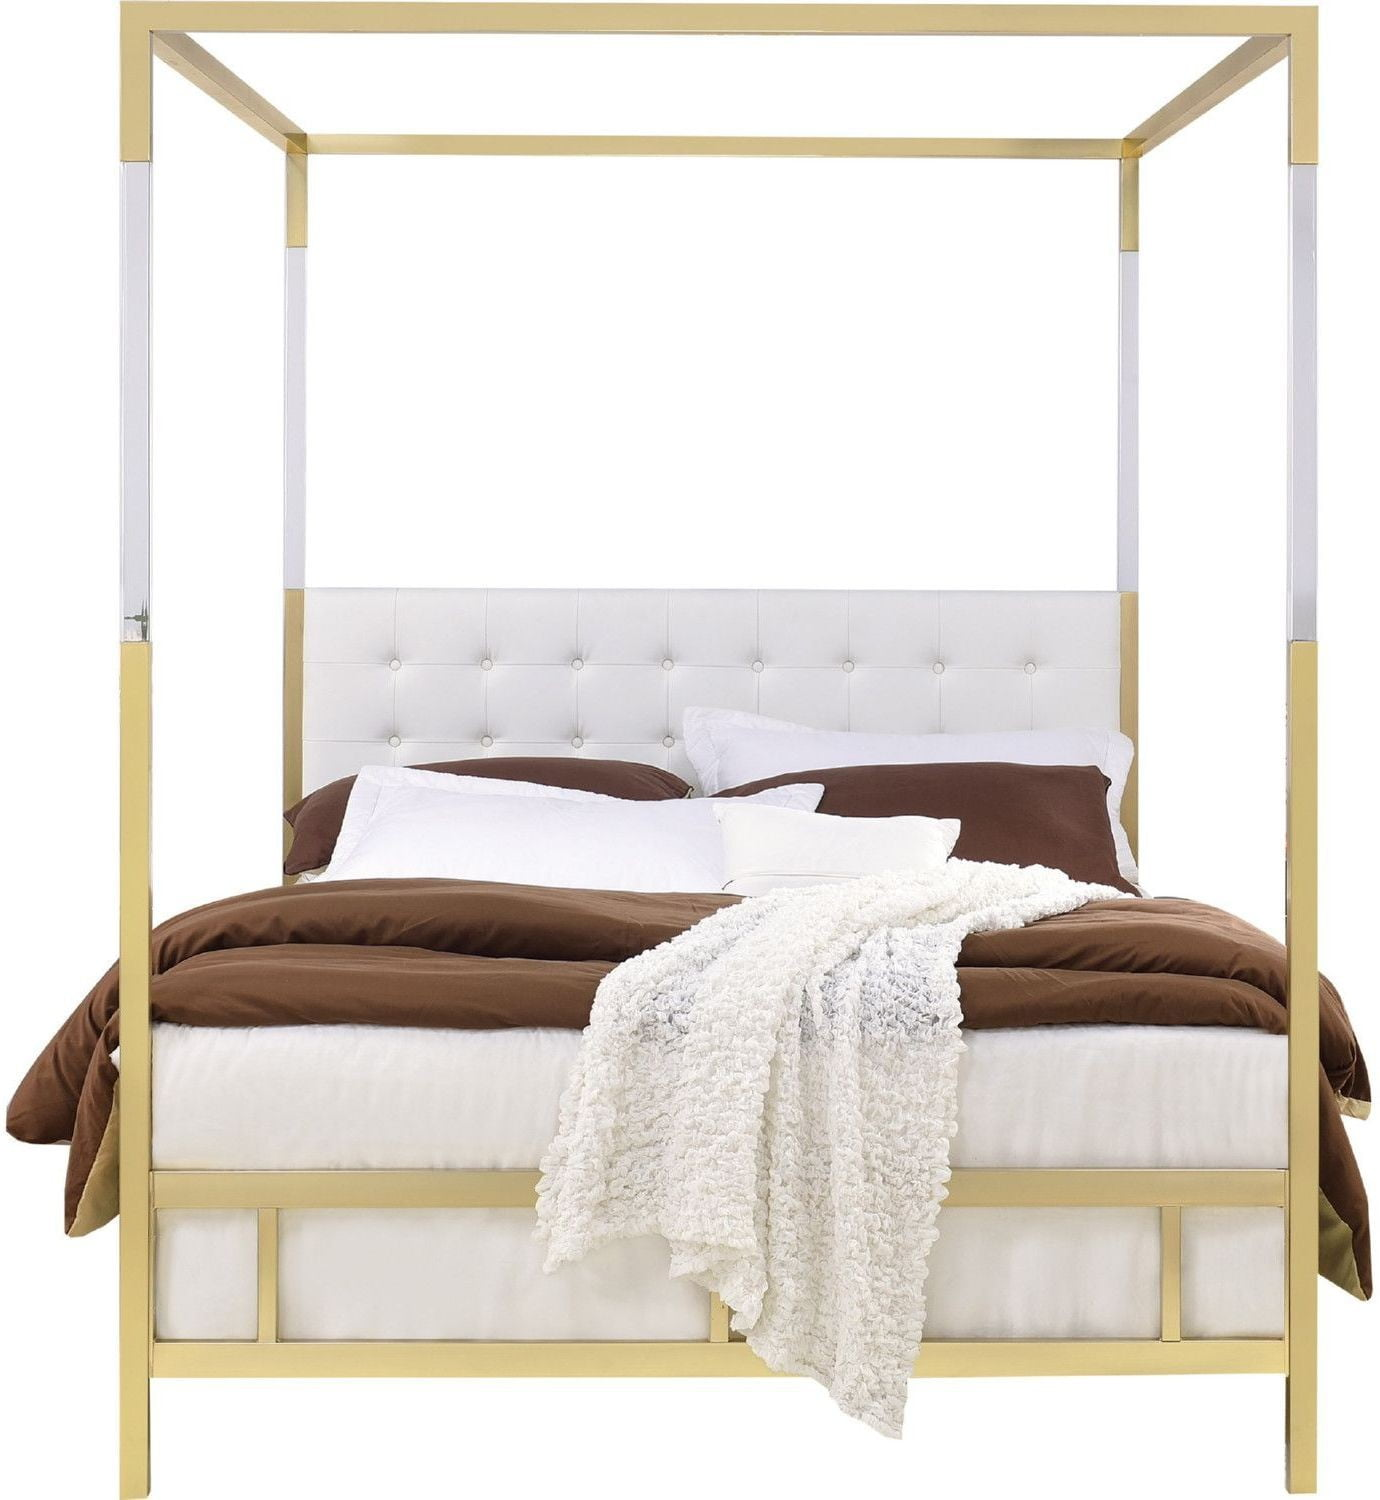 Raegan White Gold Queen Upholstered Canopy Metal Bed & Raegan White Gold Queen Upholstered Canopy Metal Bed from Acme ...